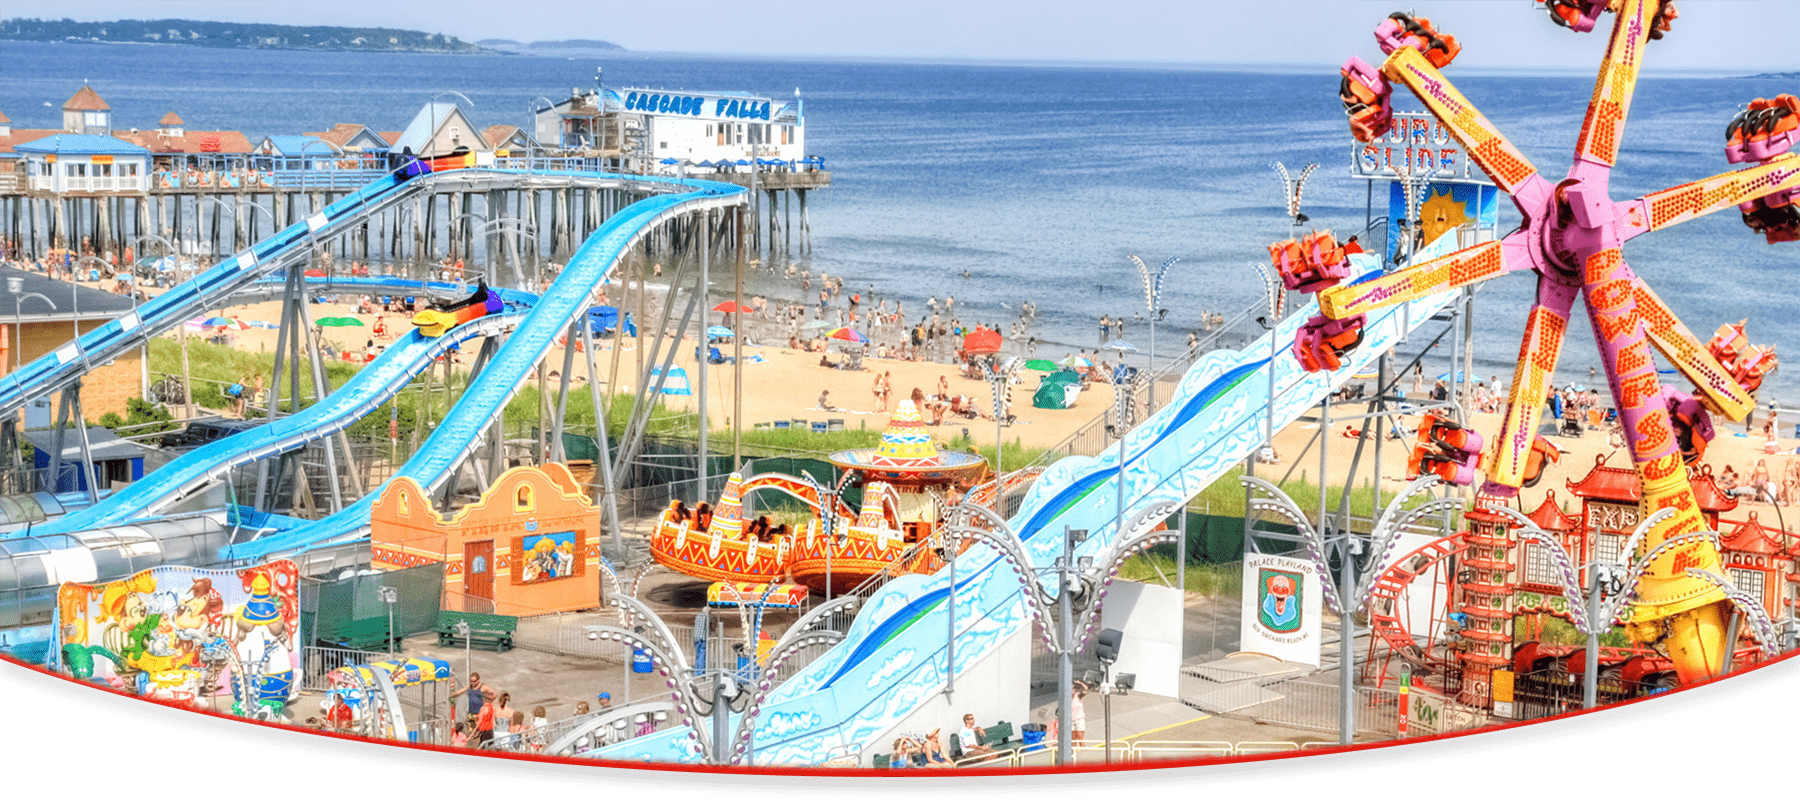 Home Page Slider | Powersurge, Kiddieland, and Beach | Background | Palace Playland | Old Orchard Beach, ME